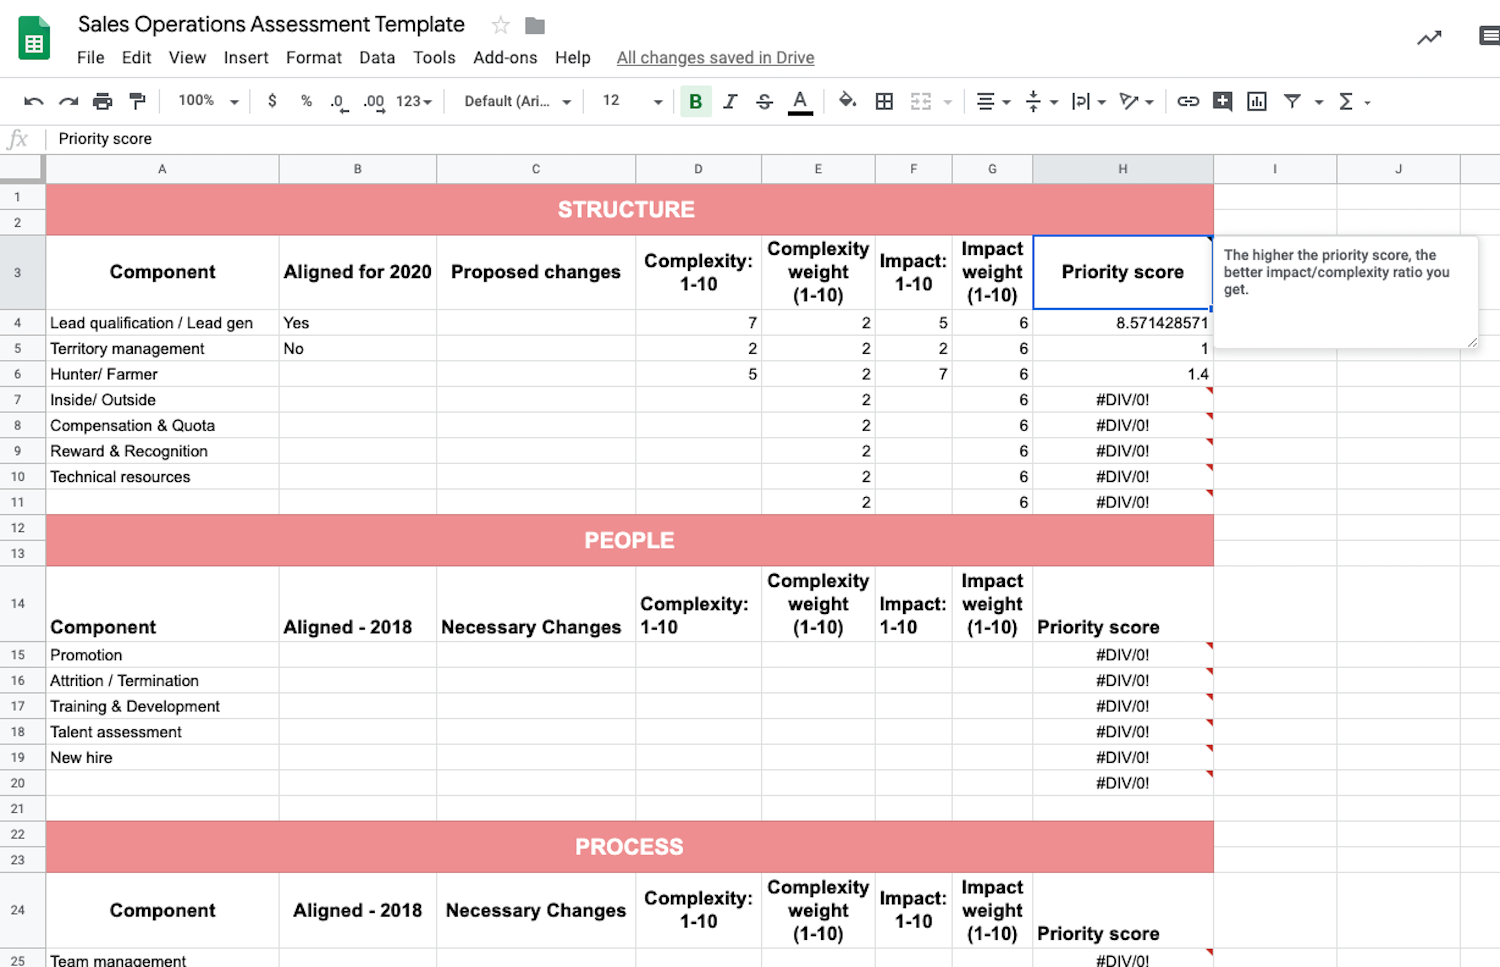 sales operations assessment template screenshot